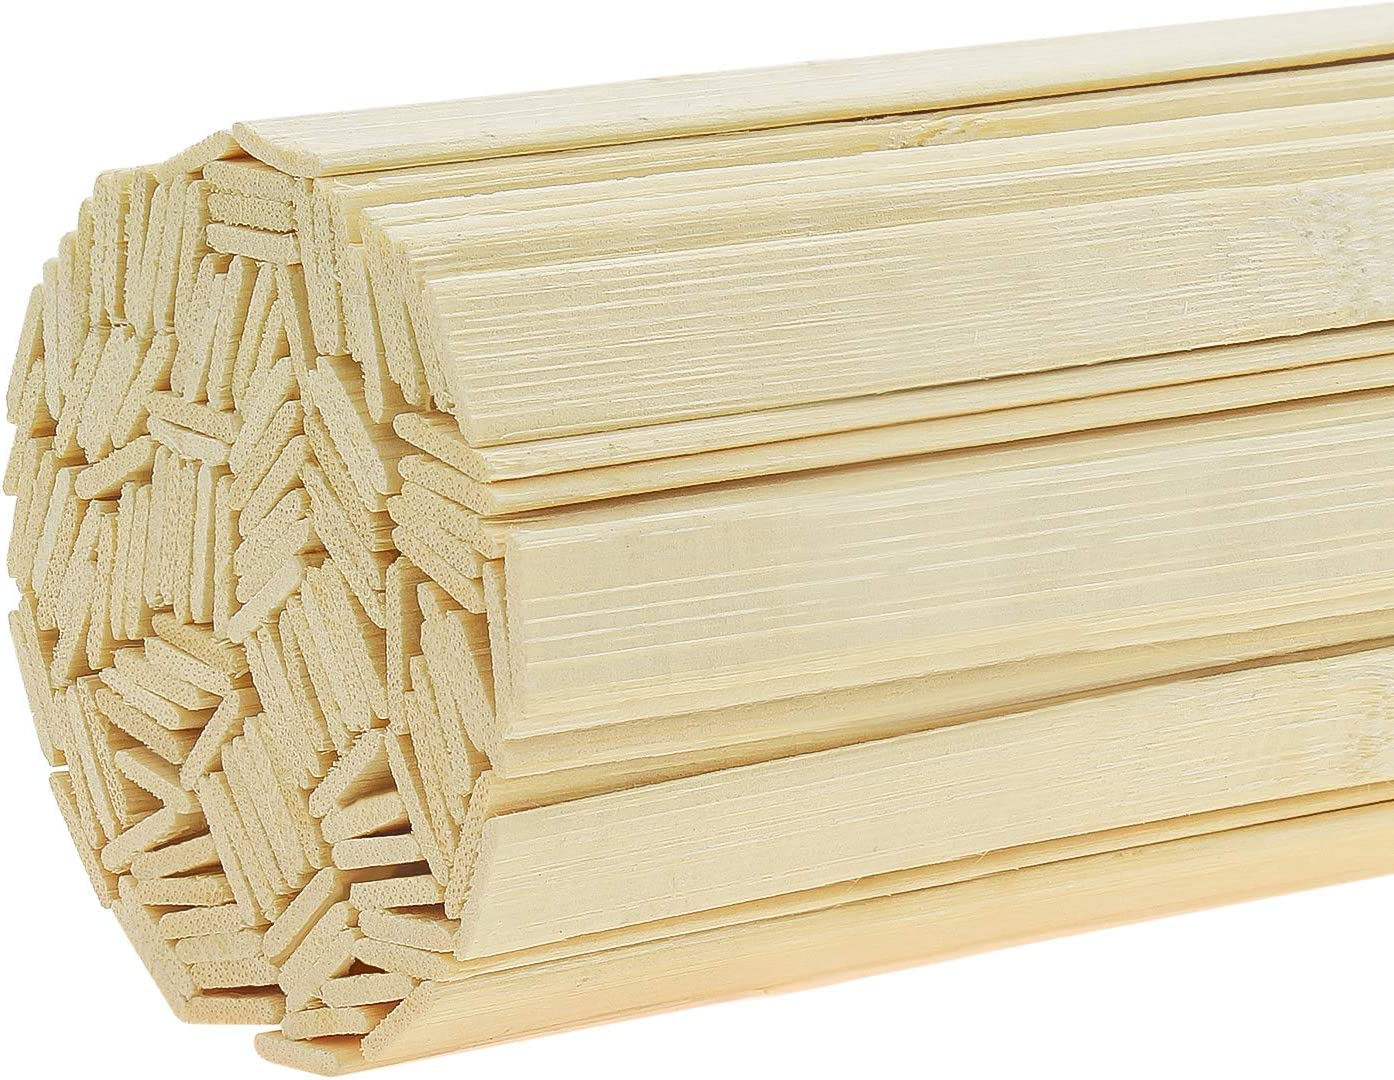 Powlankou 128 Pieces 15.75 Inches Natural Bamboo Sticks, Bamboo Strips, Strong Natural Bamboo Sticks for Craft Projects